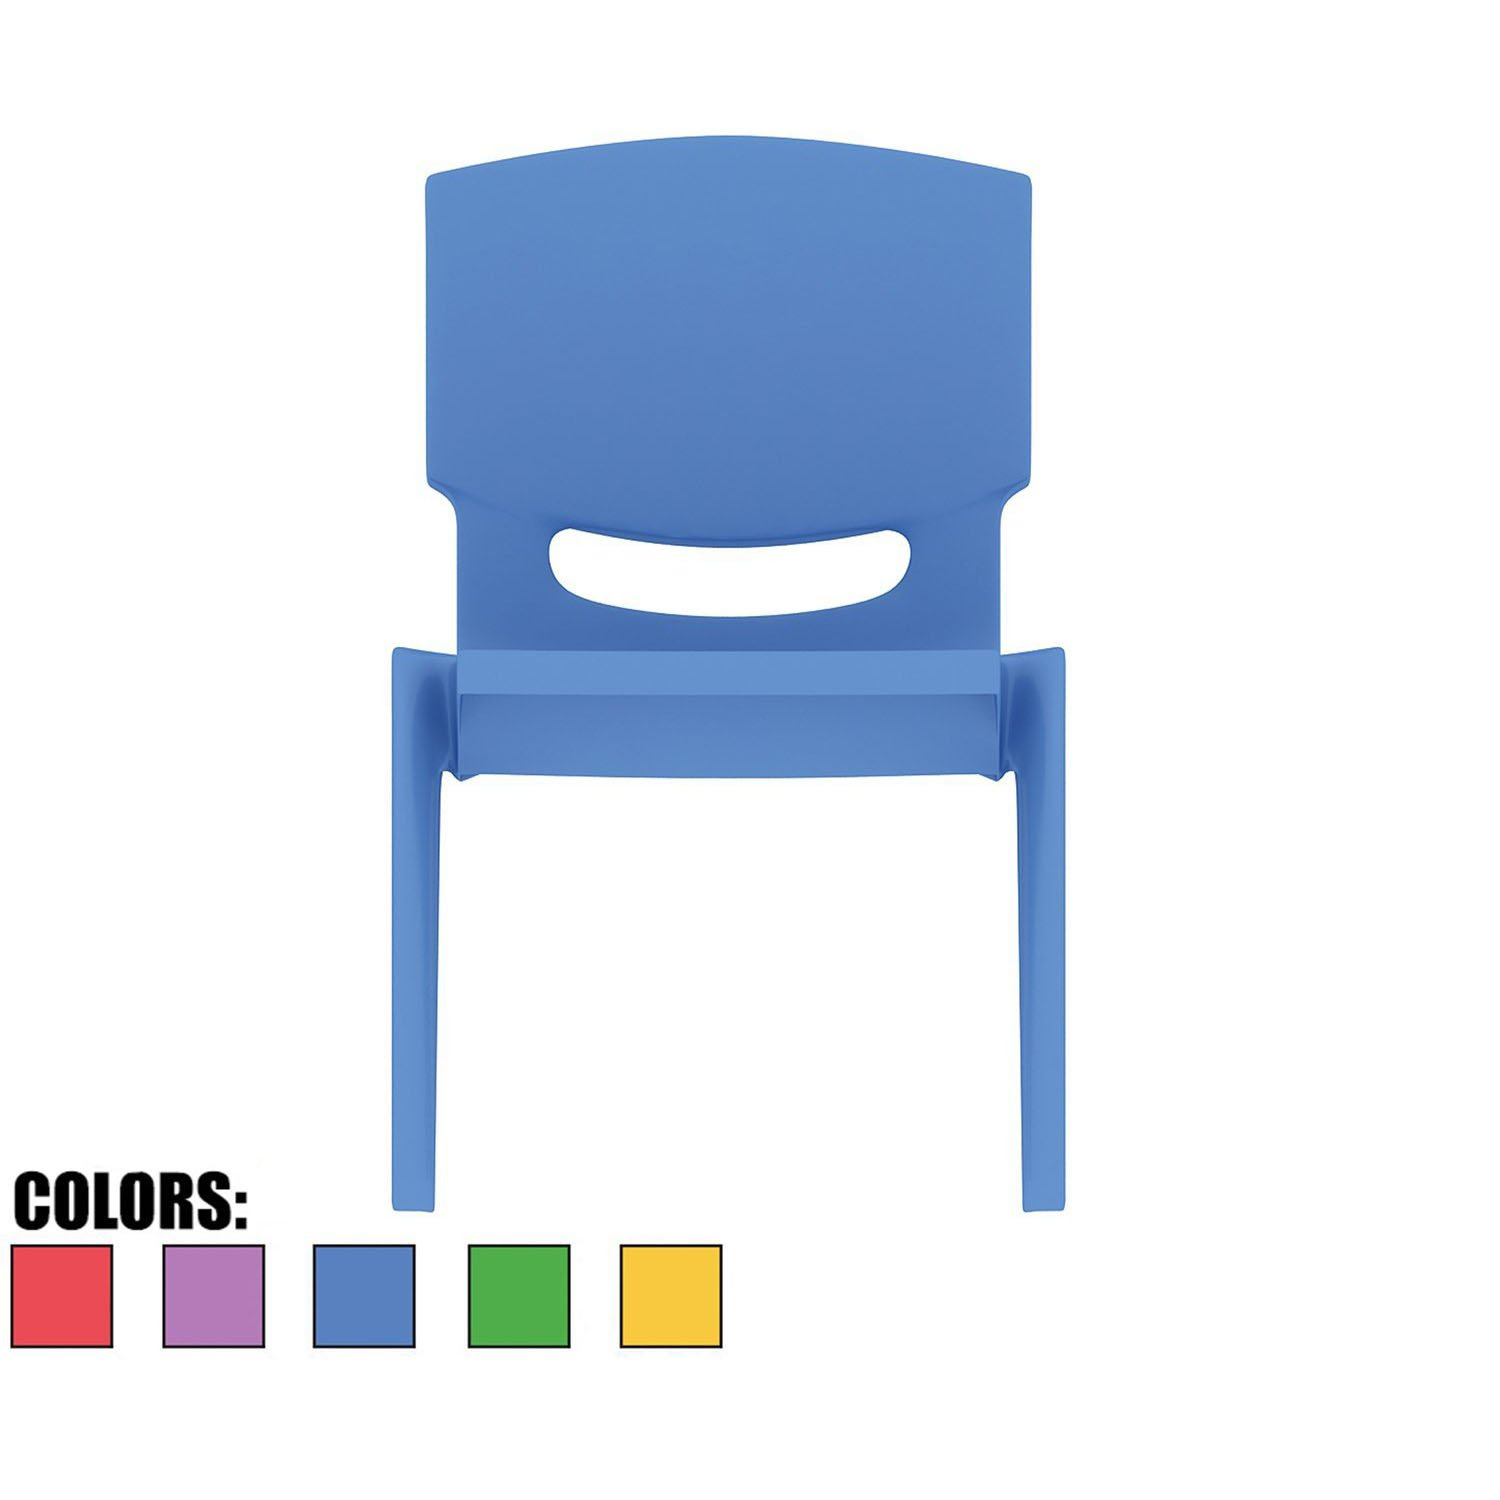 2xhome - Blue - Kids Size Plastic Side Chair 10'' Seat Height Blue Childs Chair Childrens Room School Chairs No Arm Arms Armless Molded Plastic Seat Stackable